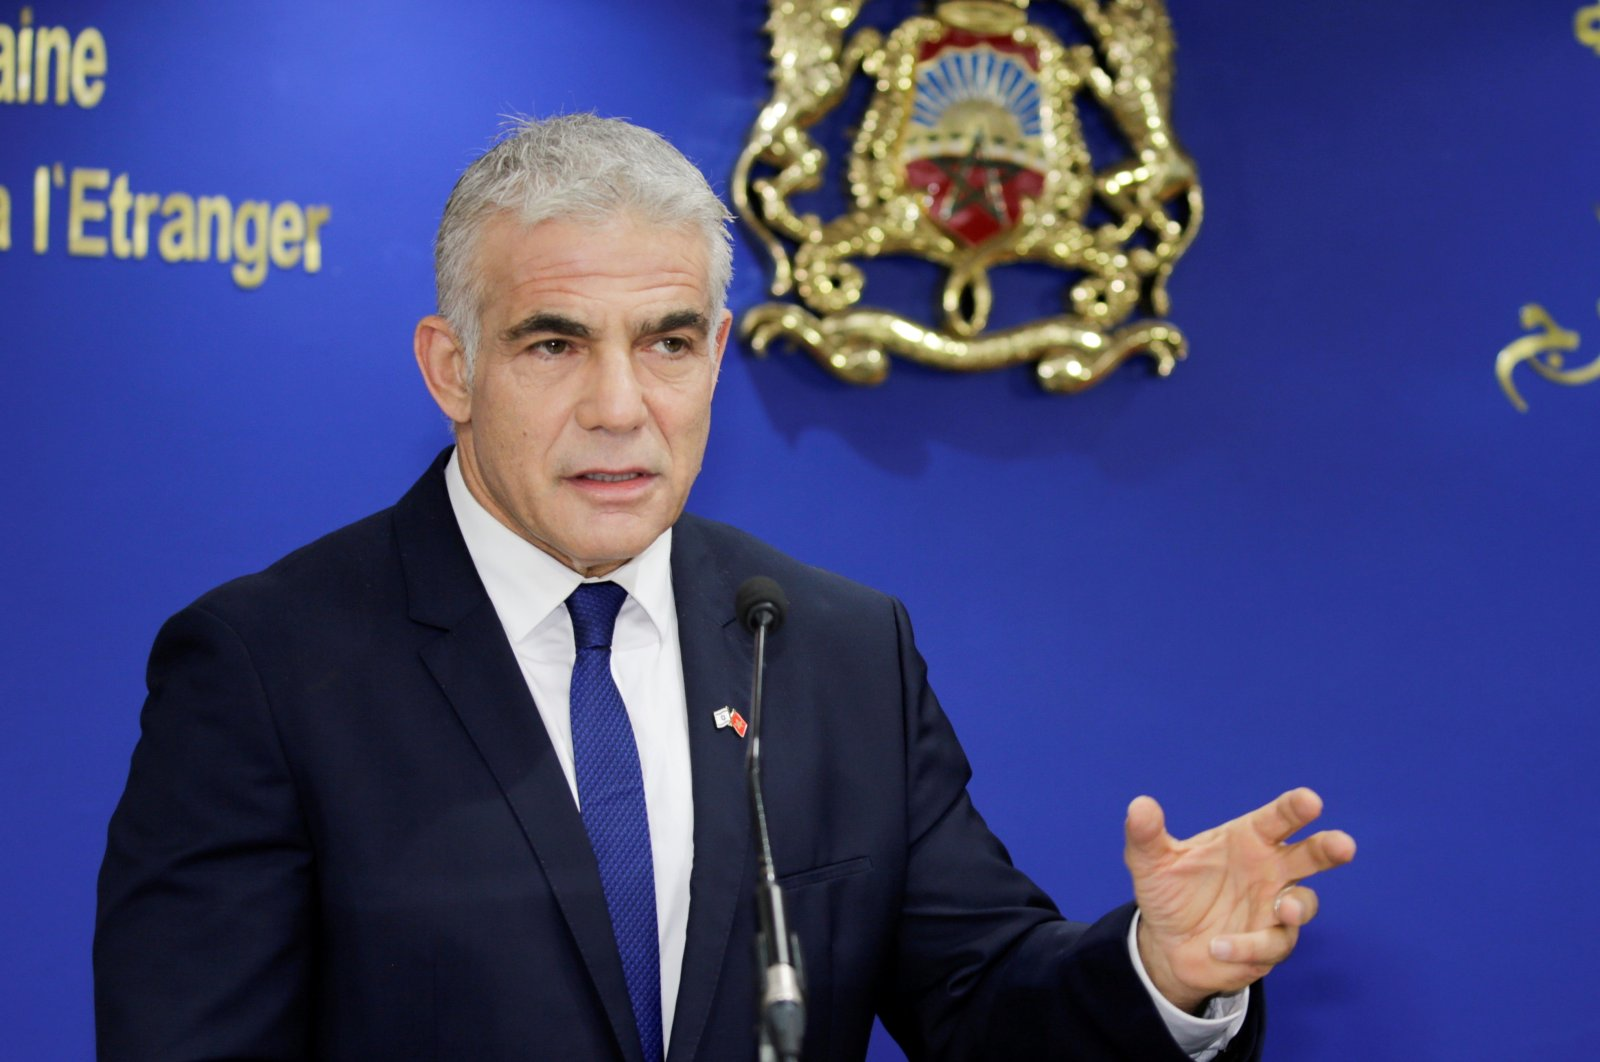 Israeli Foreign Minister Yair Lapid speaks during a news conference as he meets with Moroccan Foreign Minister Nasser Bourita in Rabat, Morocco, Aug. 11, 2021. (Reuters Photo)